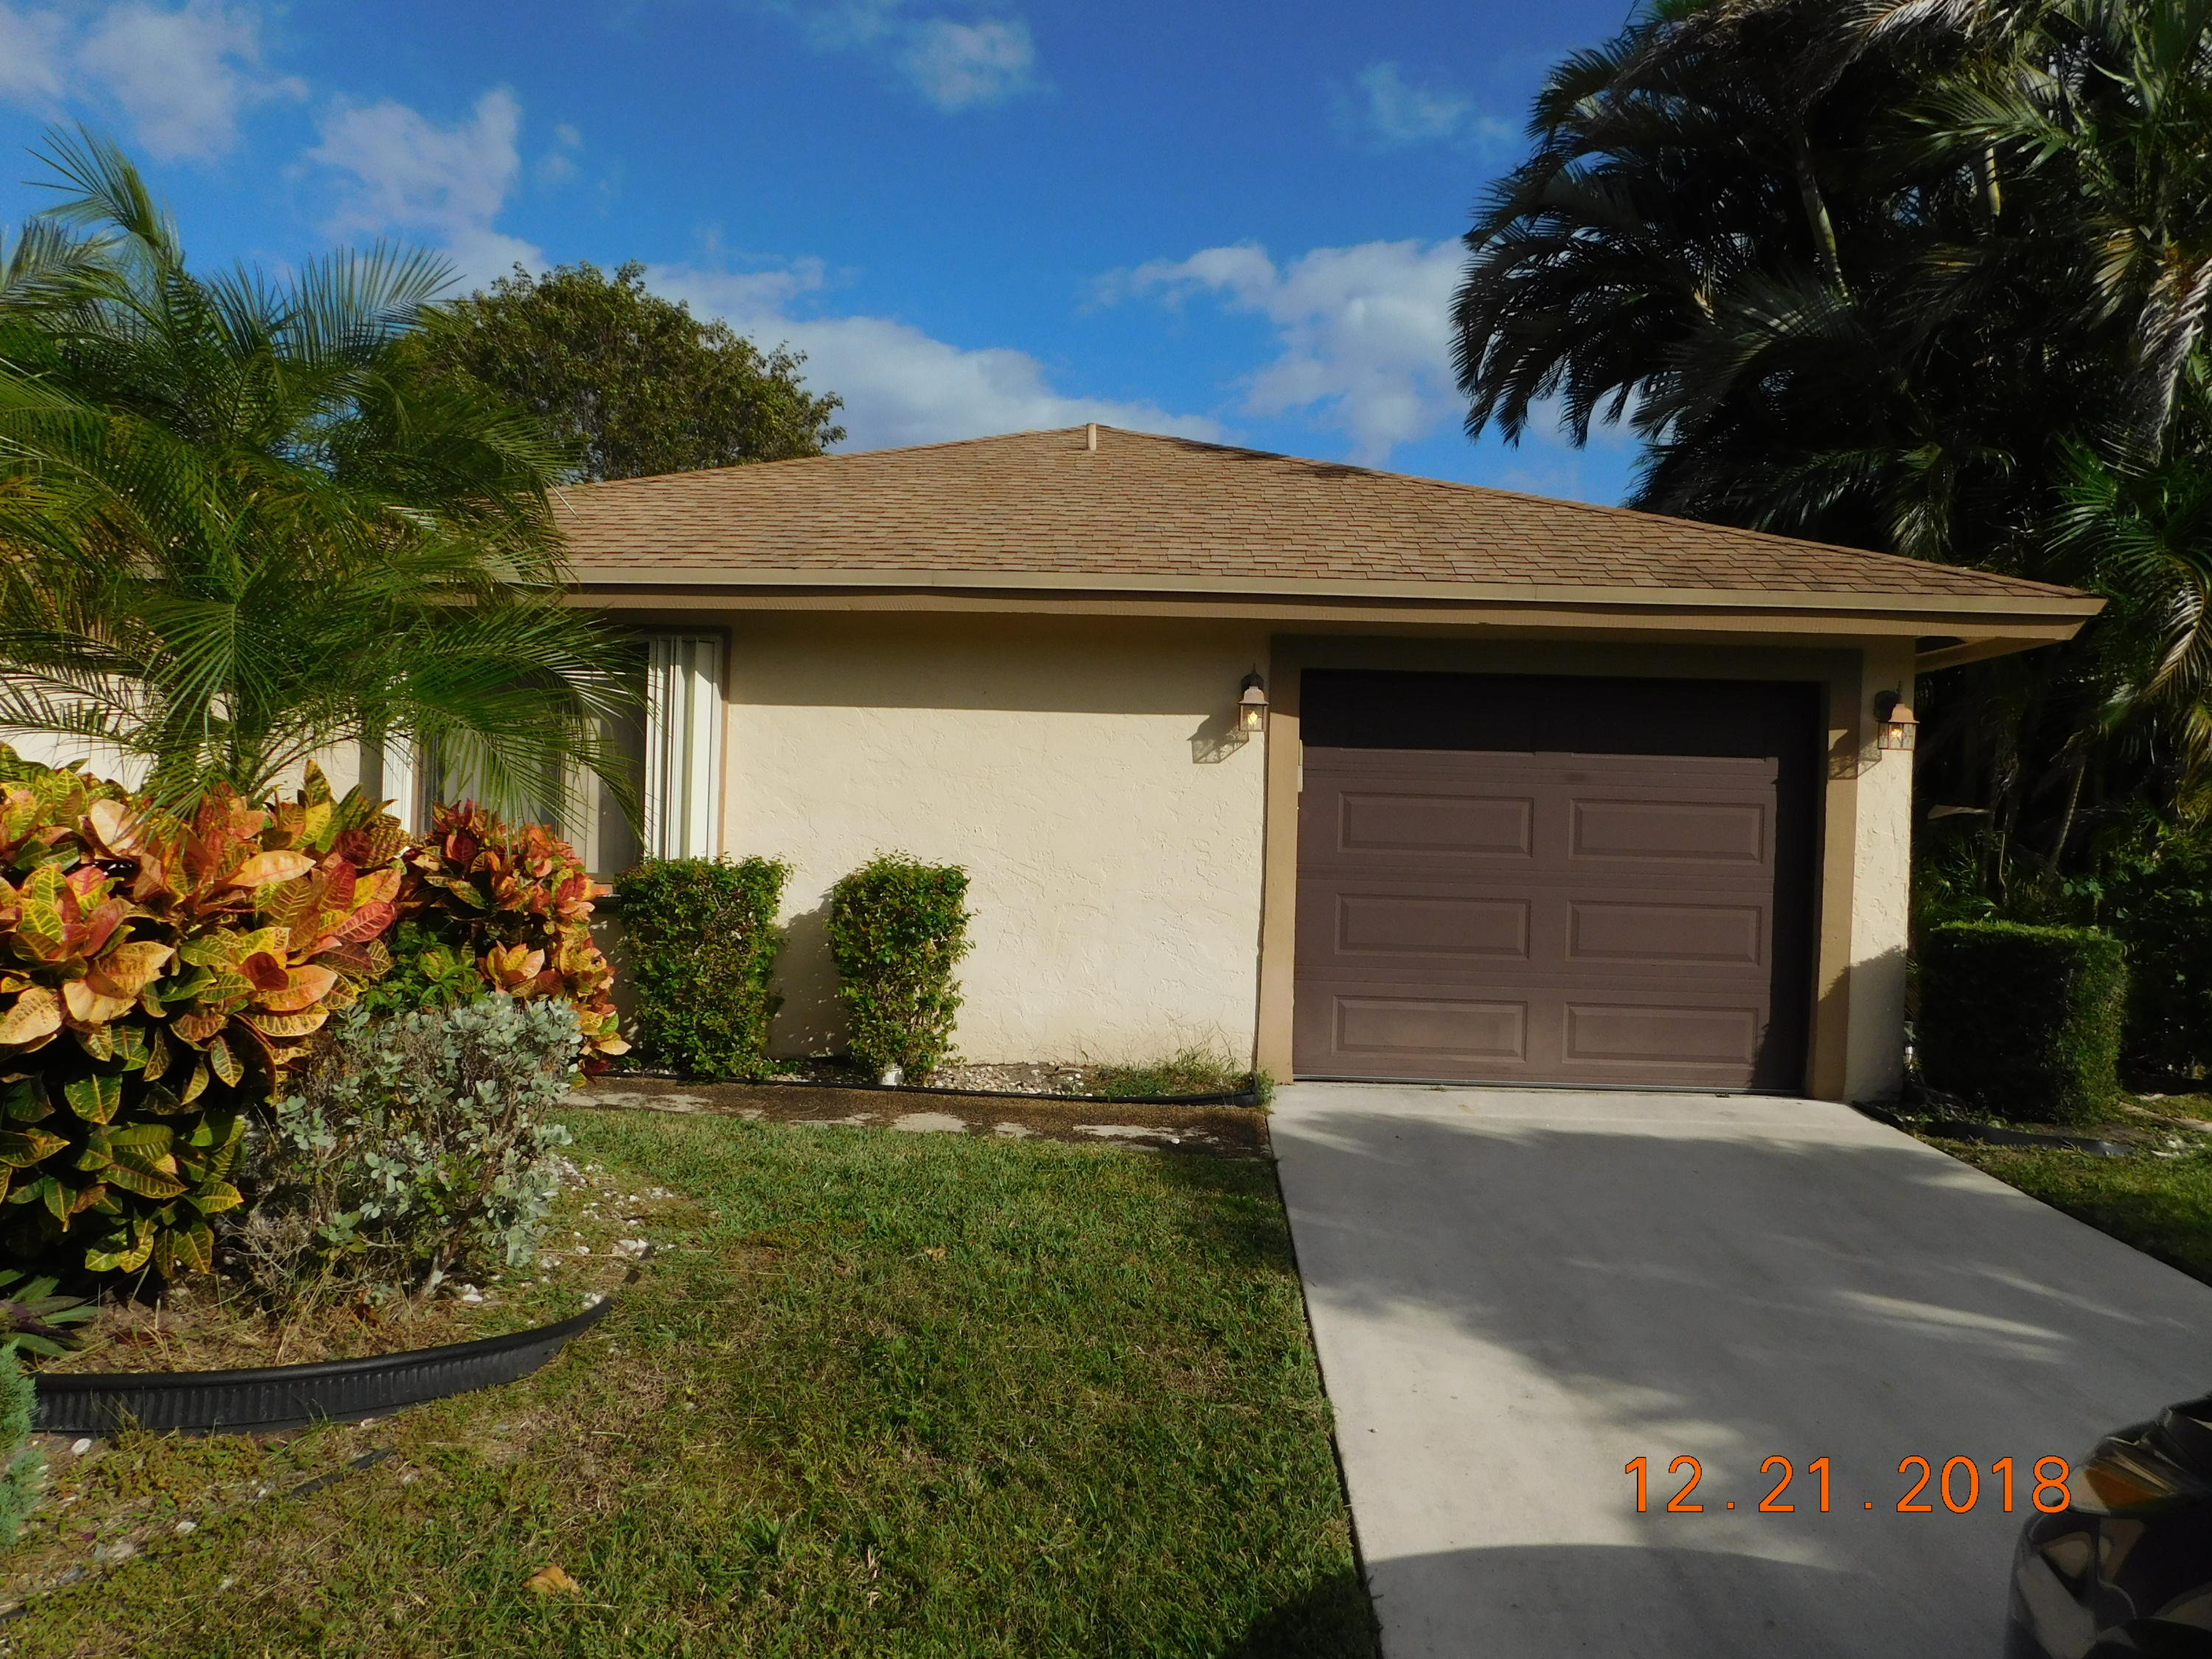 Home for sale in Rainberry Bay Delray Beach Florida